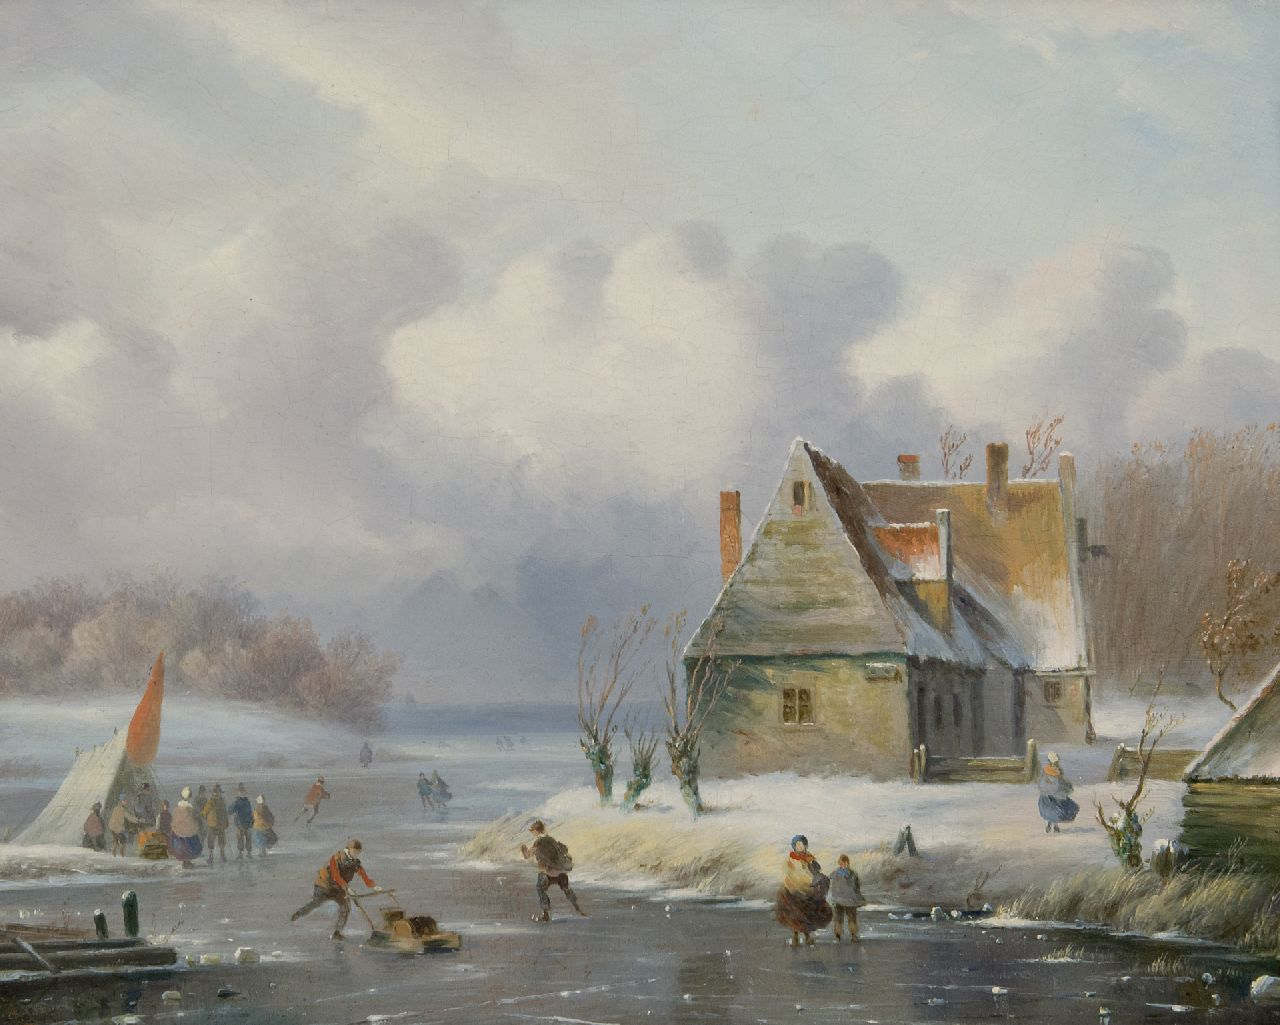 Ahrendts C.E.  | Carl Eduard Ahrendts | Paintings offered for sale | A winter landscape with skaters, oil on panel 28.7 x 35.1 cm, signed l.l.